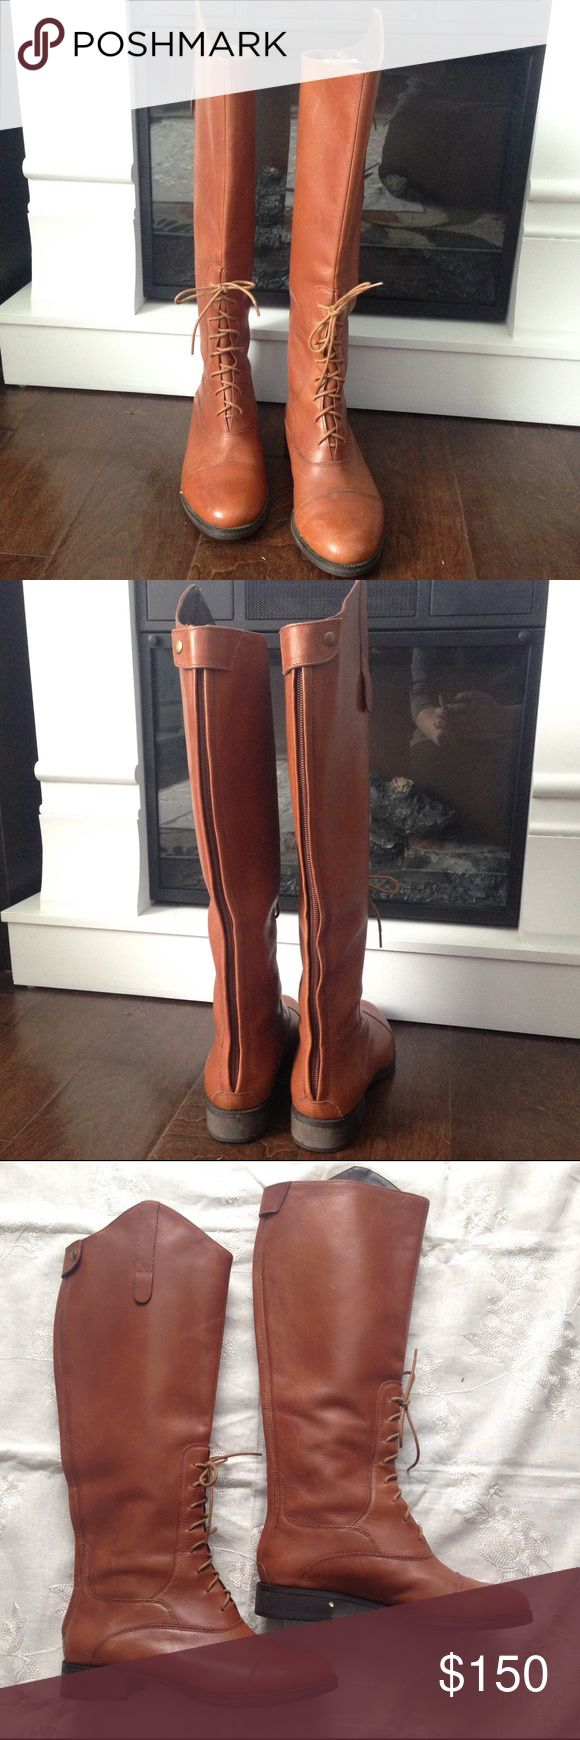 🆕 Joie tall leather boots Perfect for that adorable dress or your favorite jeans, these stunning half lace leather knee high boots from Joie stand out from the crowd! In gorgeous condition! Full zipper and snap up the back of the boots. Hardly any wear at all, small chip out of heel and slight water mark on one boot toe. Size 36, color is a very light brown. Joie Shoes